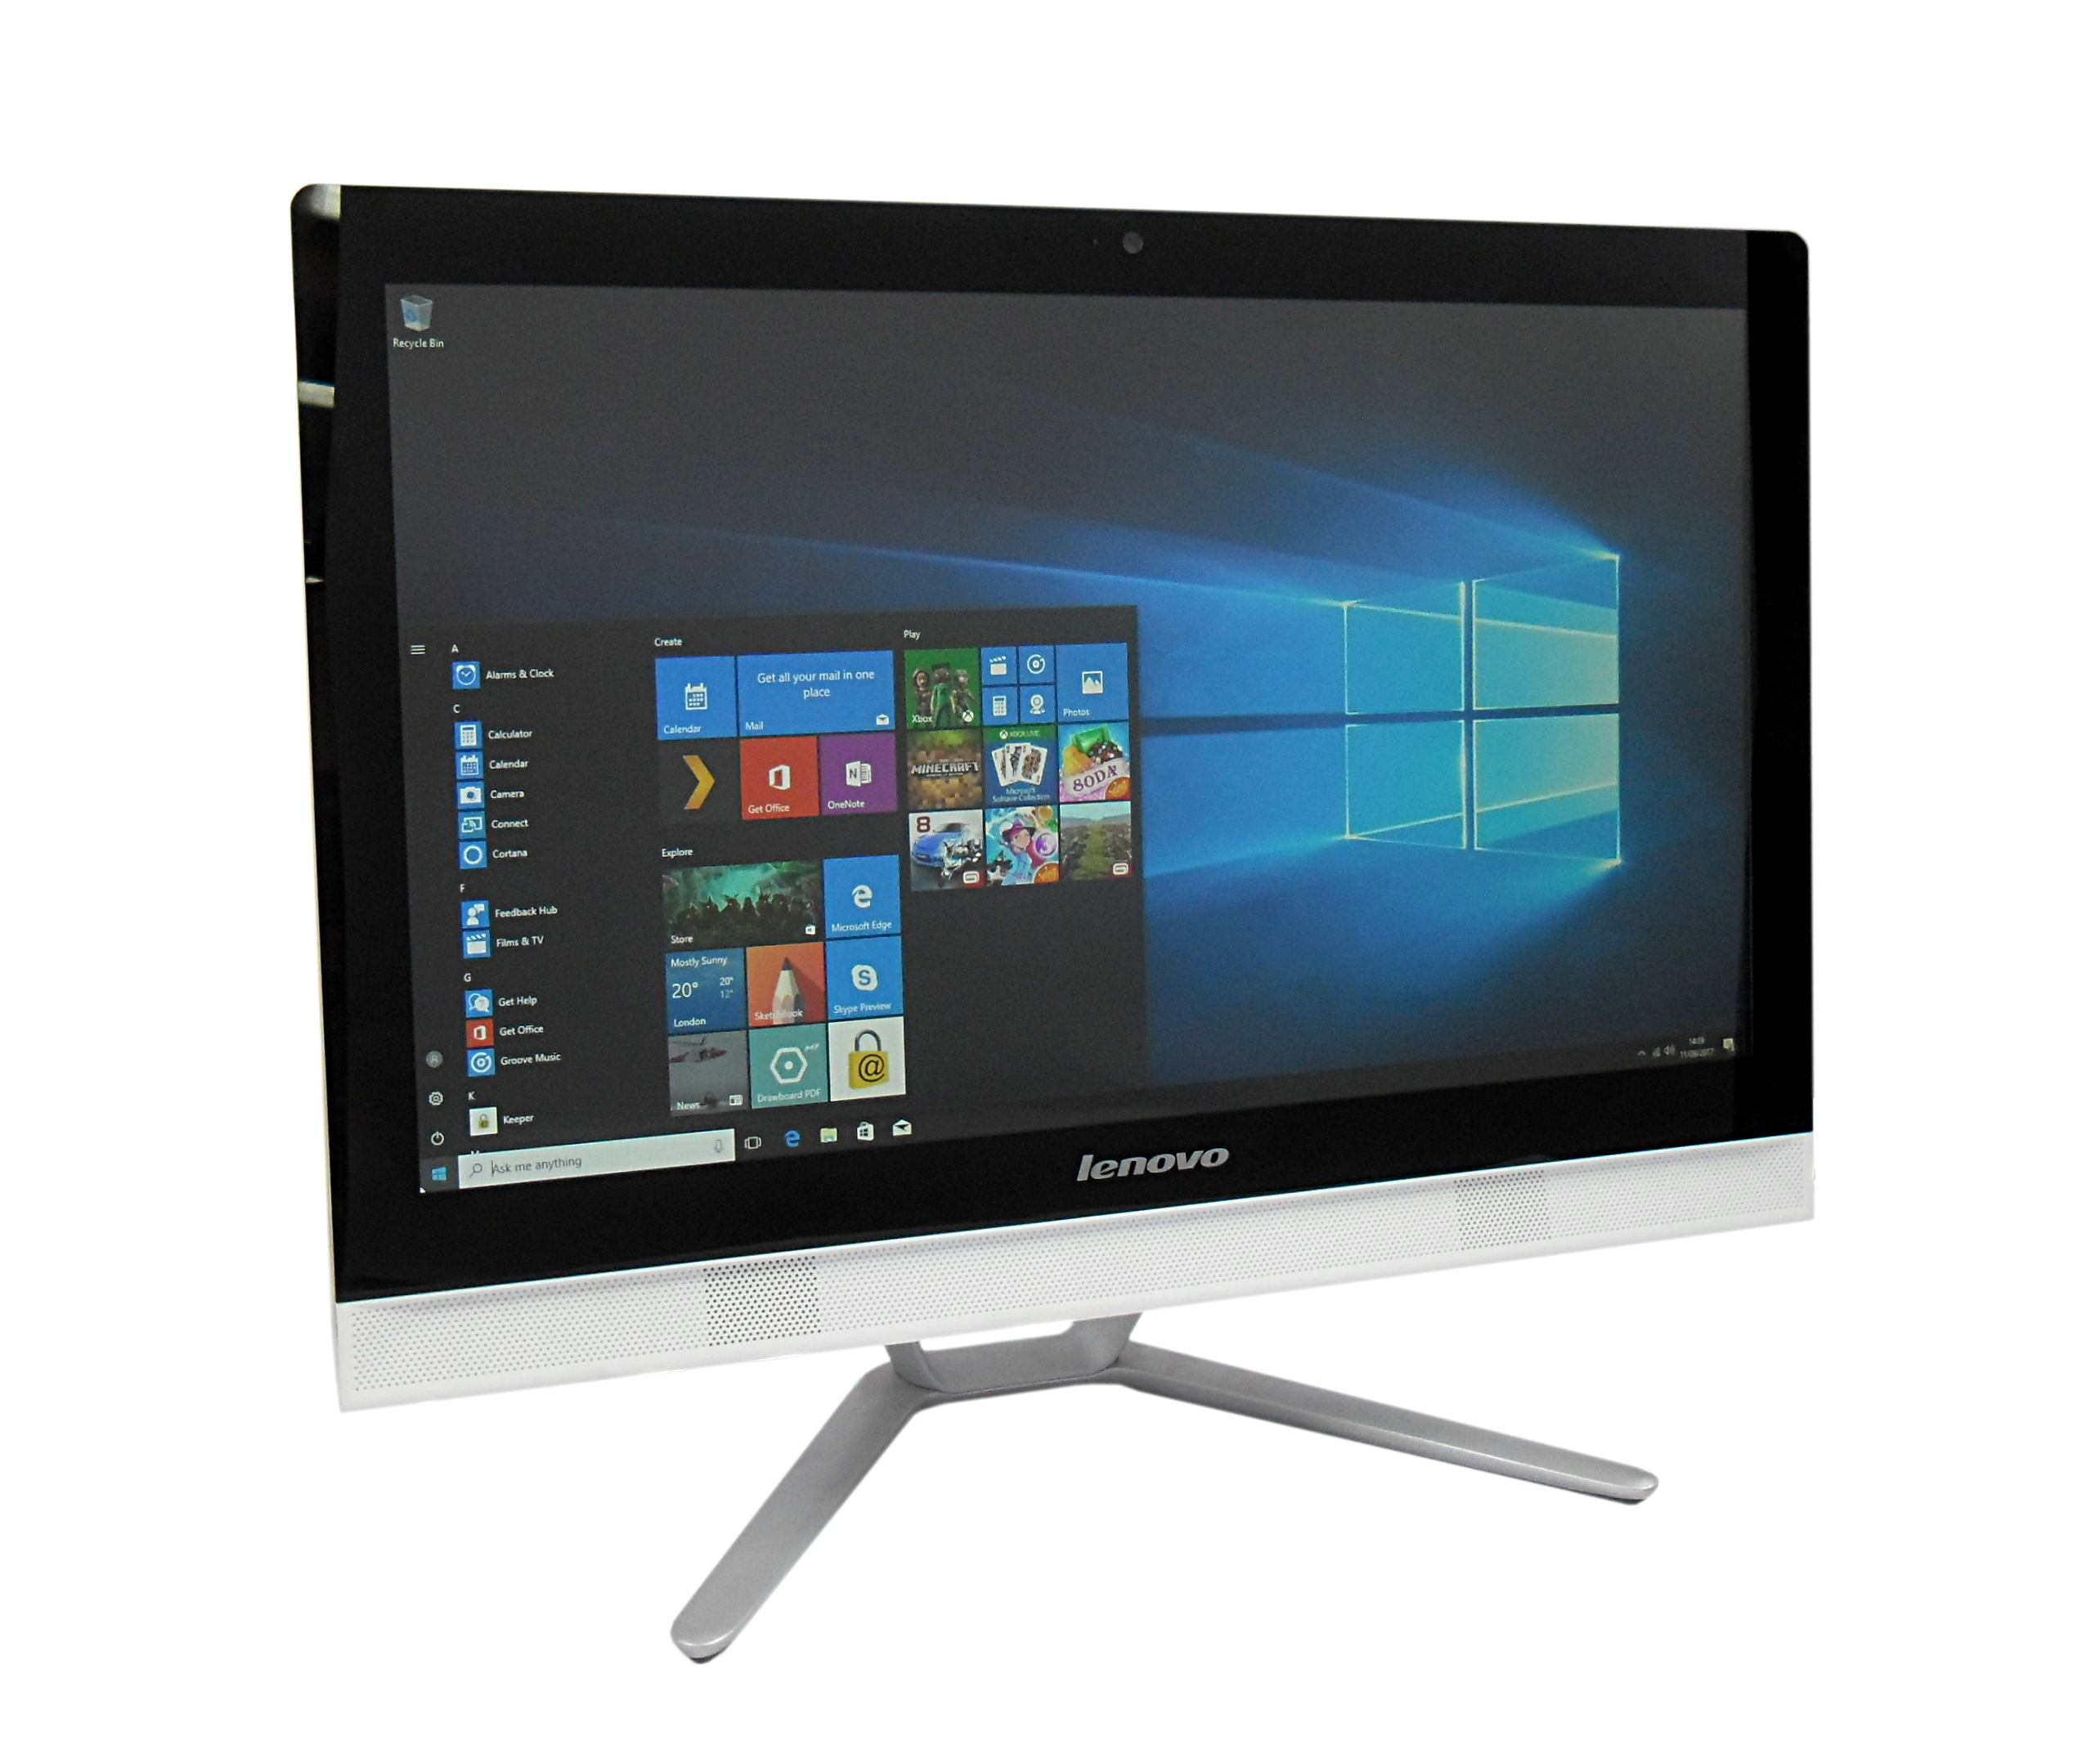 "Lenovo C40-30 21.5"" Pent 3805U/500GB HDD/8GB RAM/Non-Touch All in One PC Grade B"